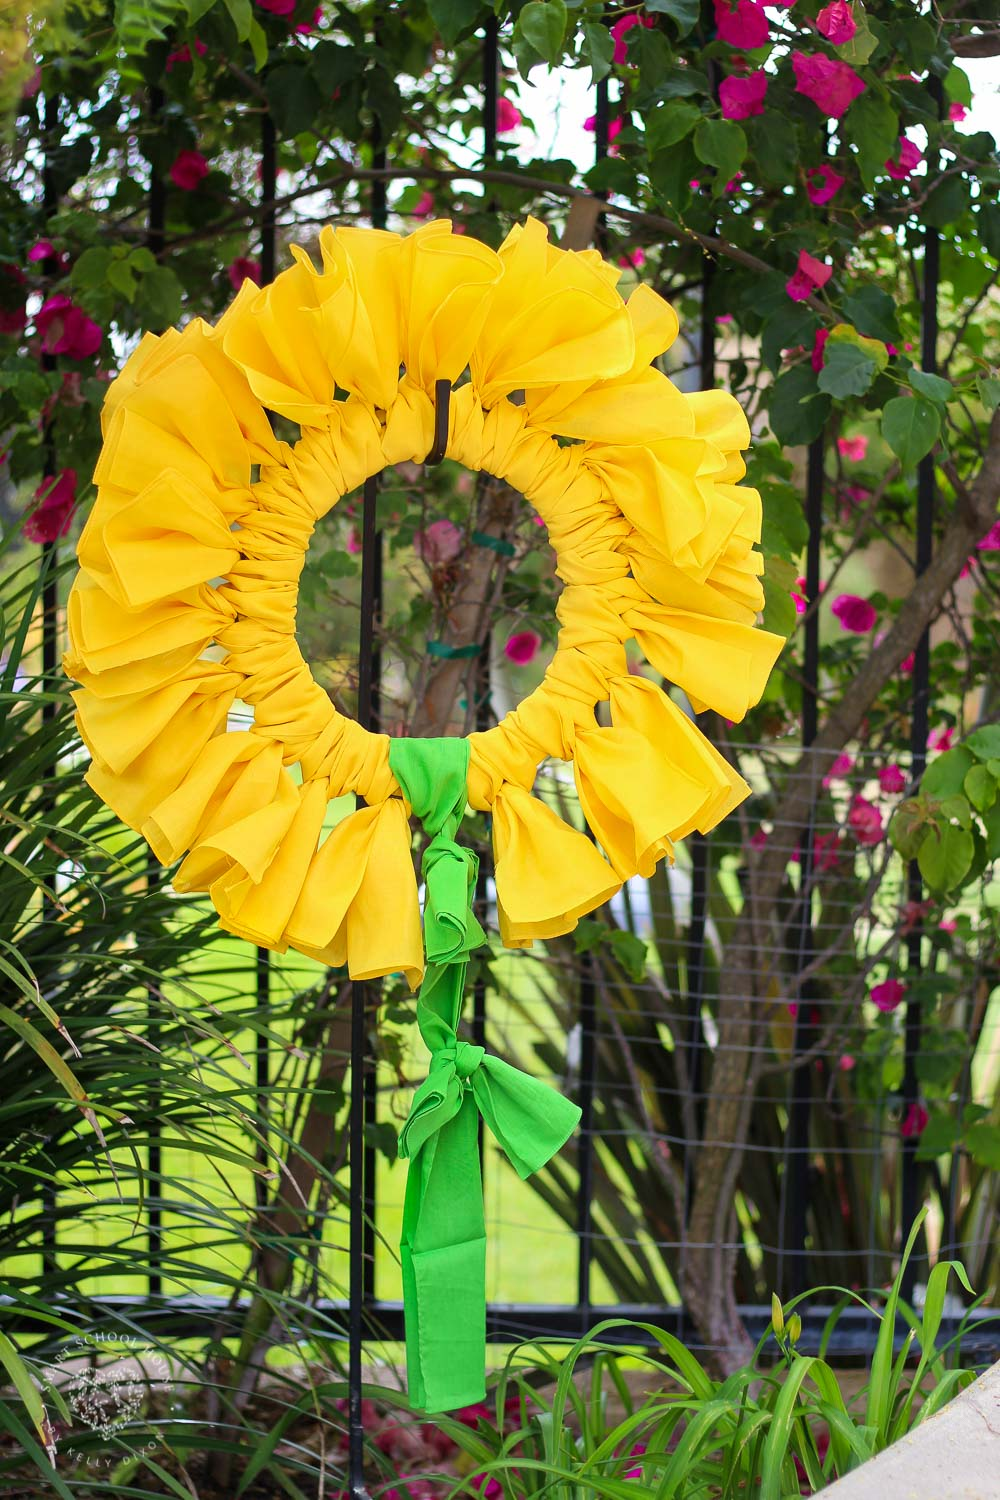 Sunflower Bandana Wreath - A DIY wreath made out of bandanas! Perfect for summer and fall. #BandanaWreath #SunflowerBandanaWreath